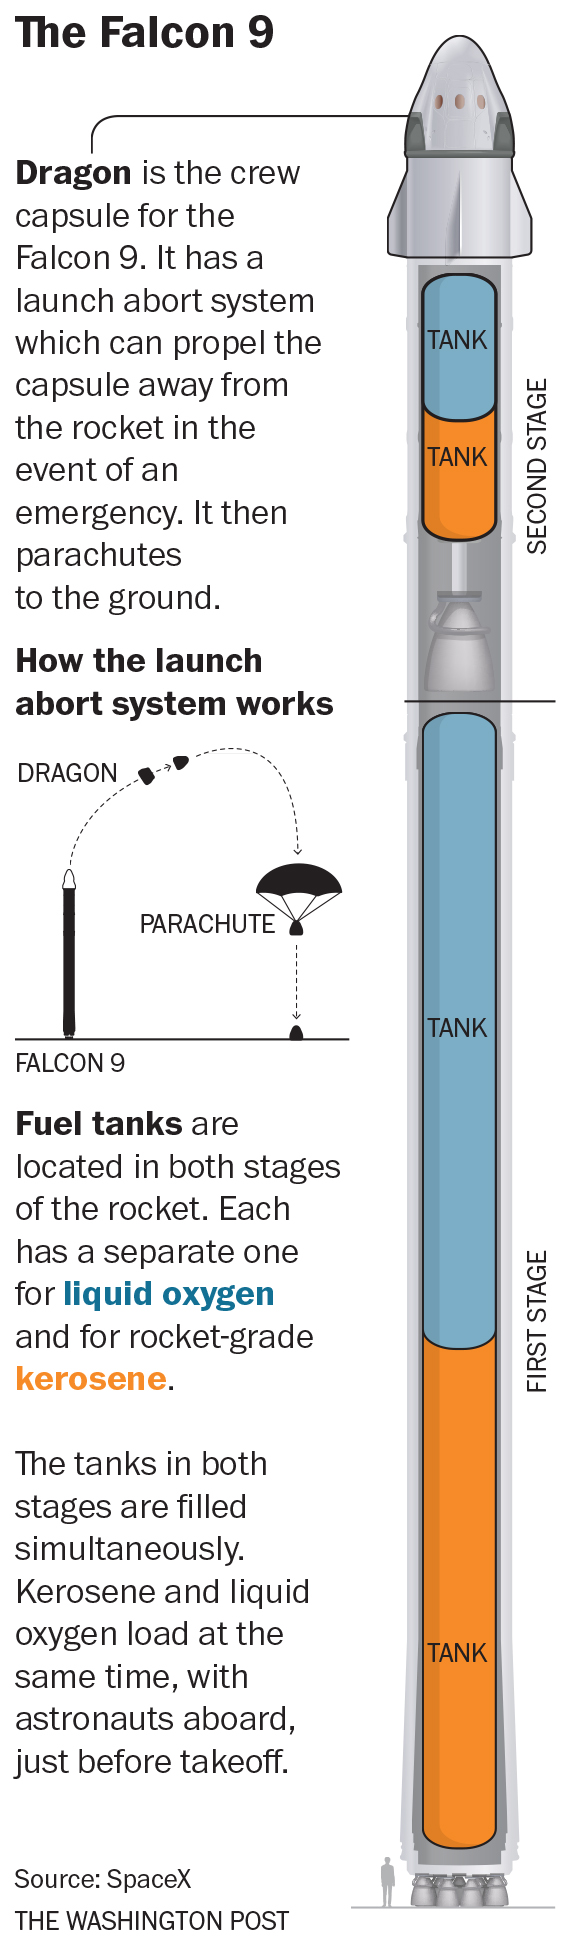 Rocket fueling methods compared